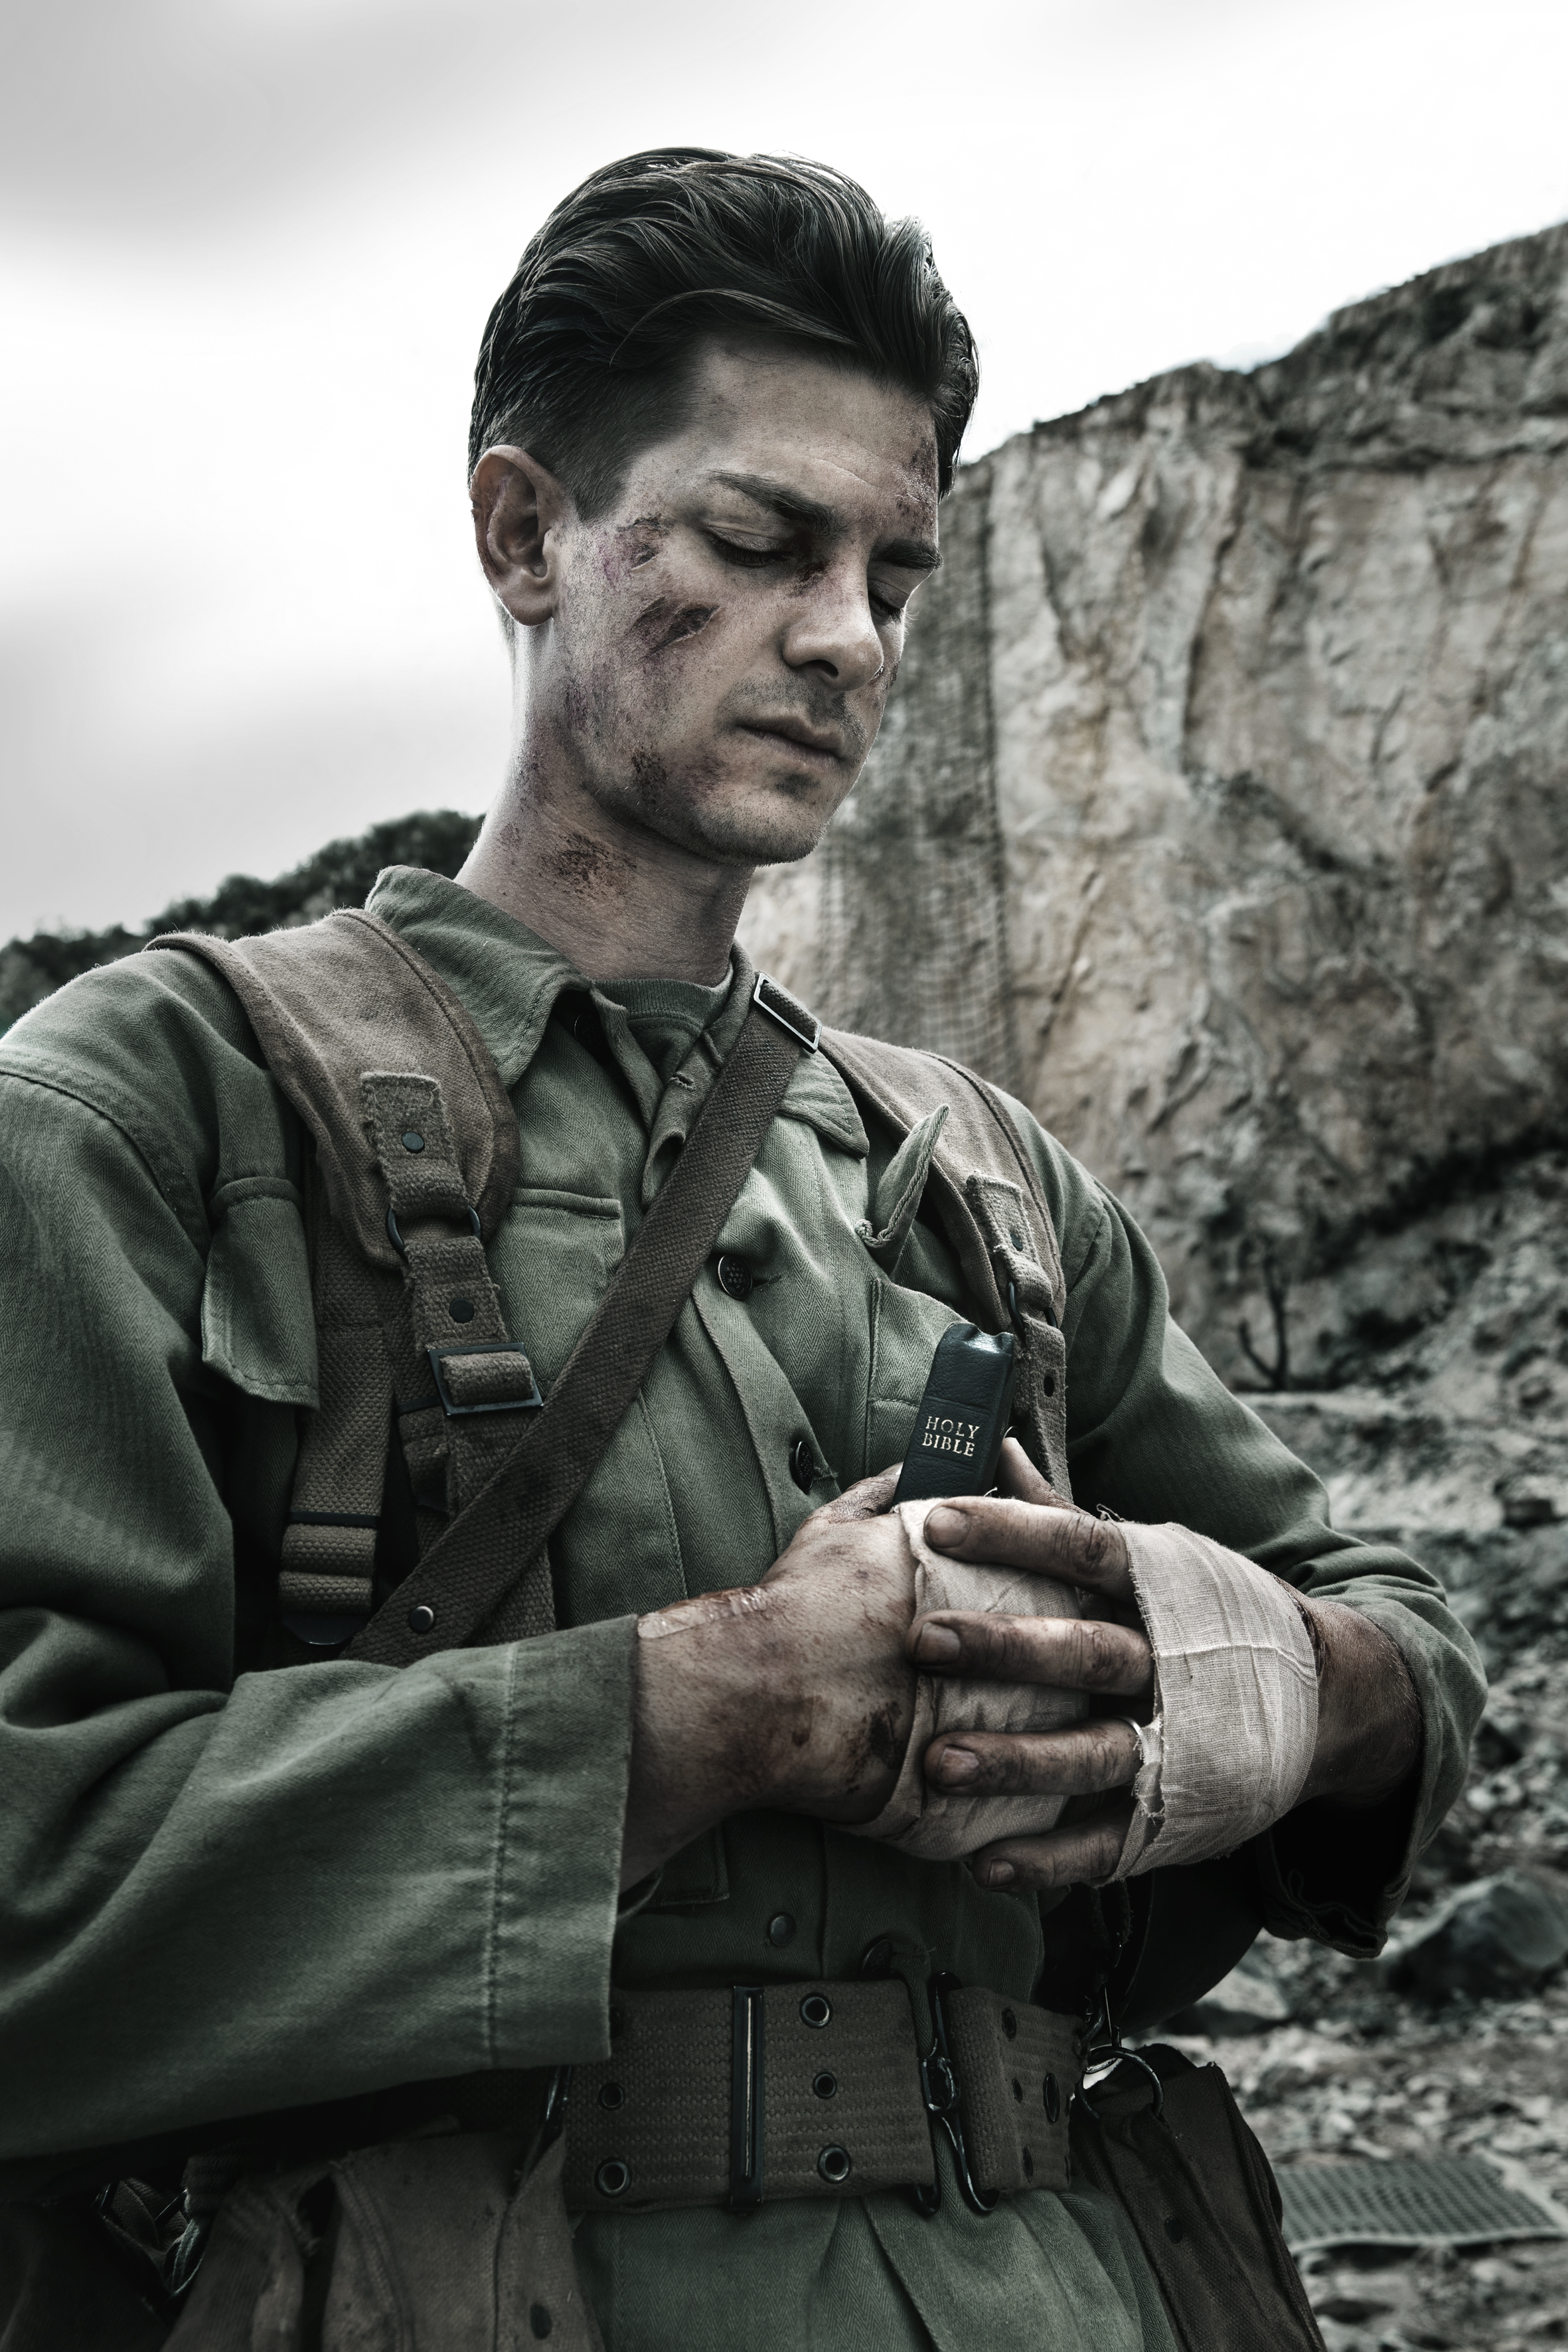 hacksawridge_d43-17534-already-released-by-lg